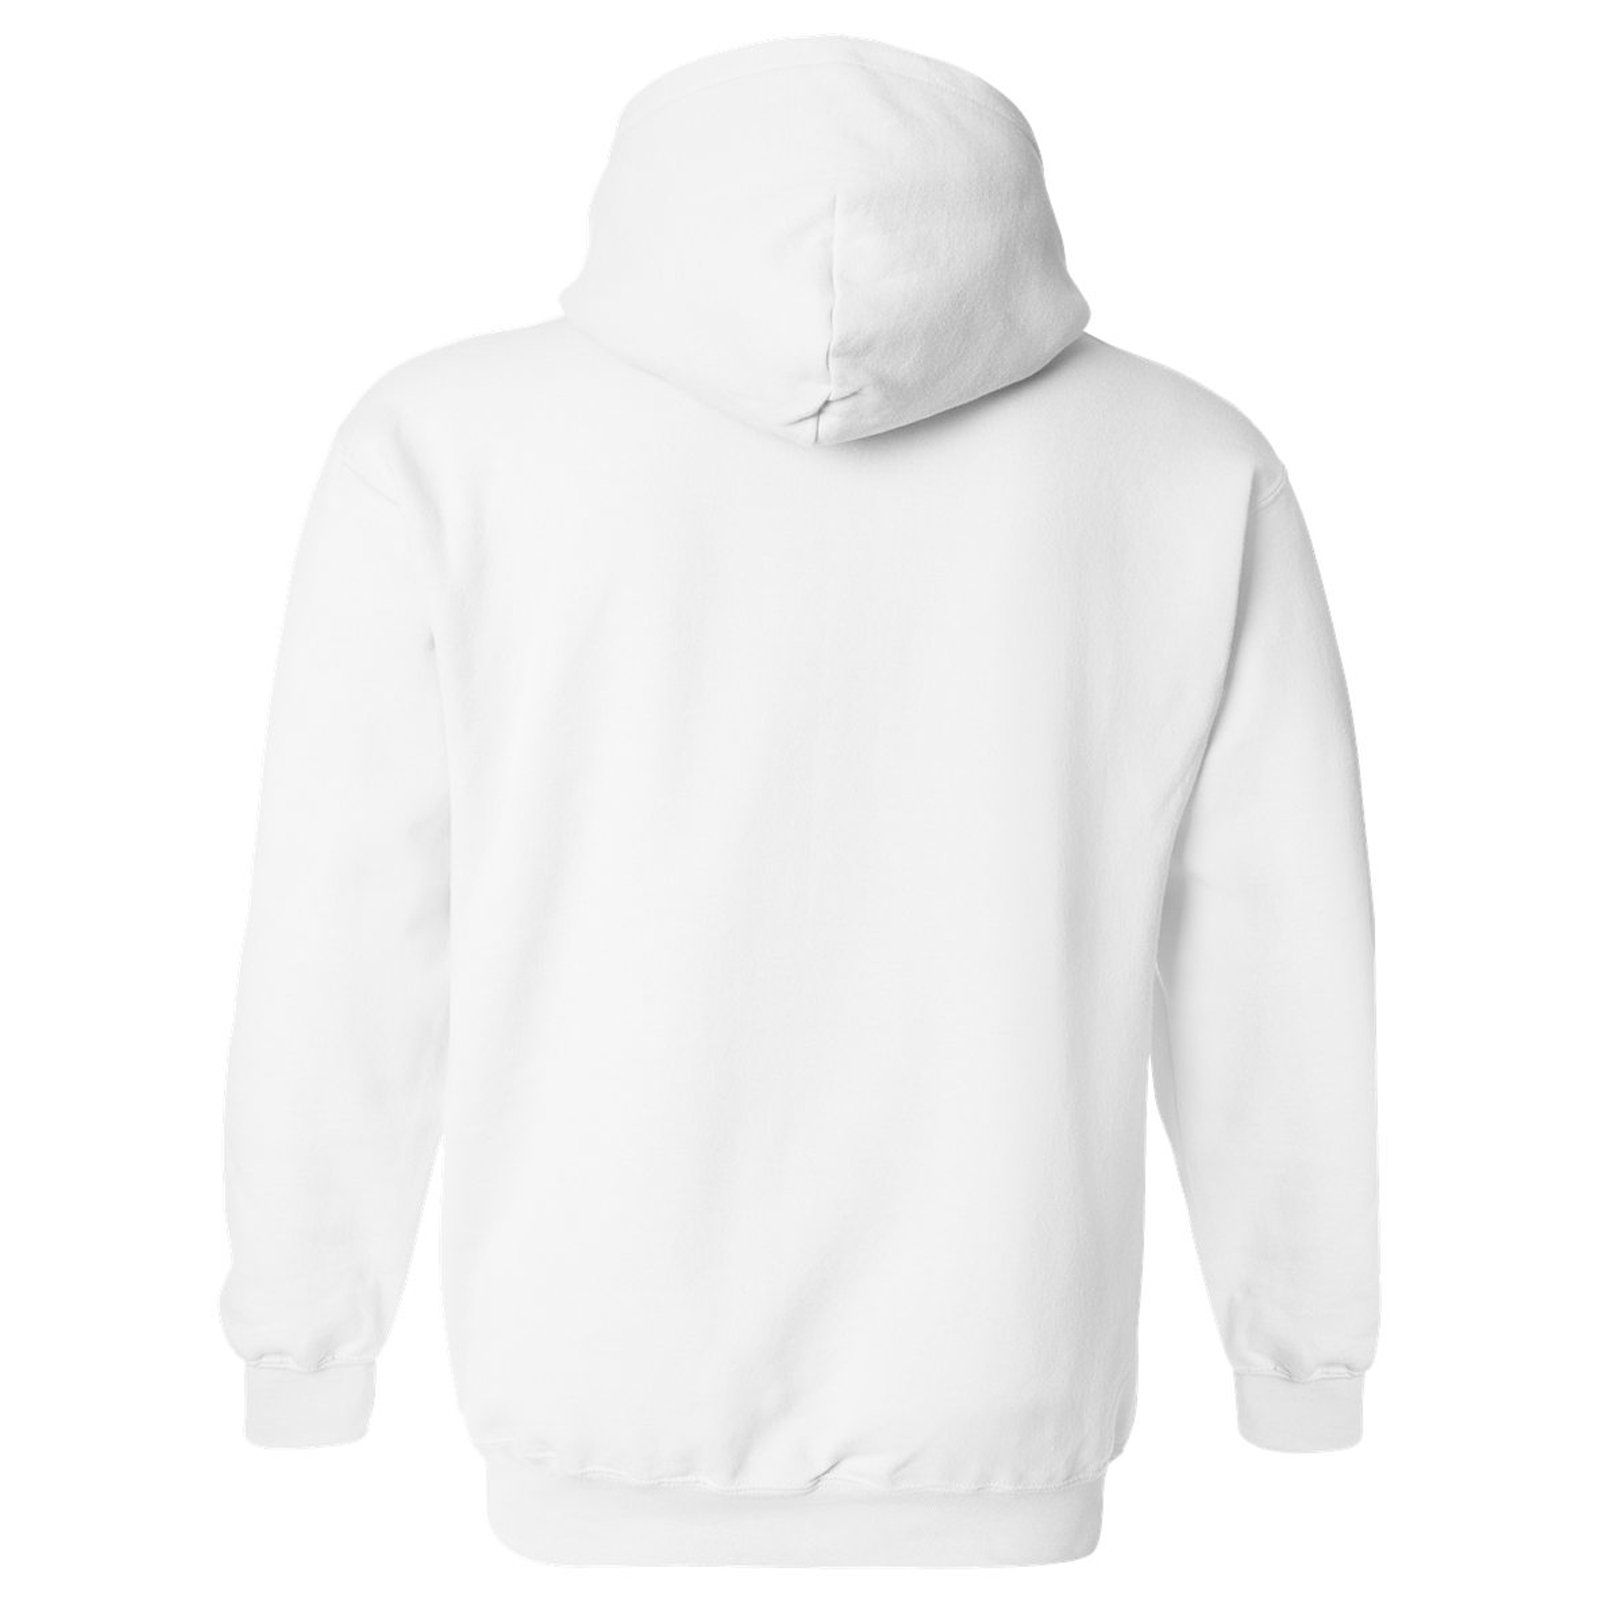 Ugp Campus Apparel Penn State Nittany Lions Arch Logo Hoodie 2xlarge White Check Out This Great Product This Is Unisex Hoodies Pullover Hoodie Hoodies [ 1601 x 1601 Pixel ]